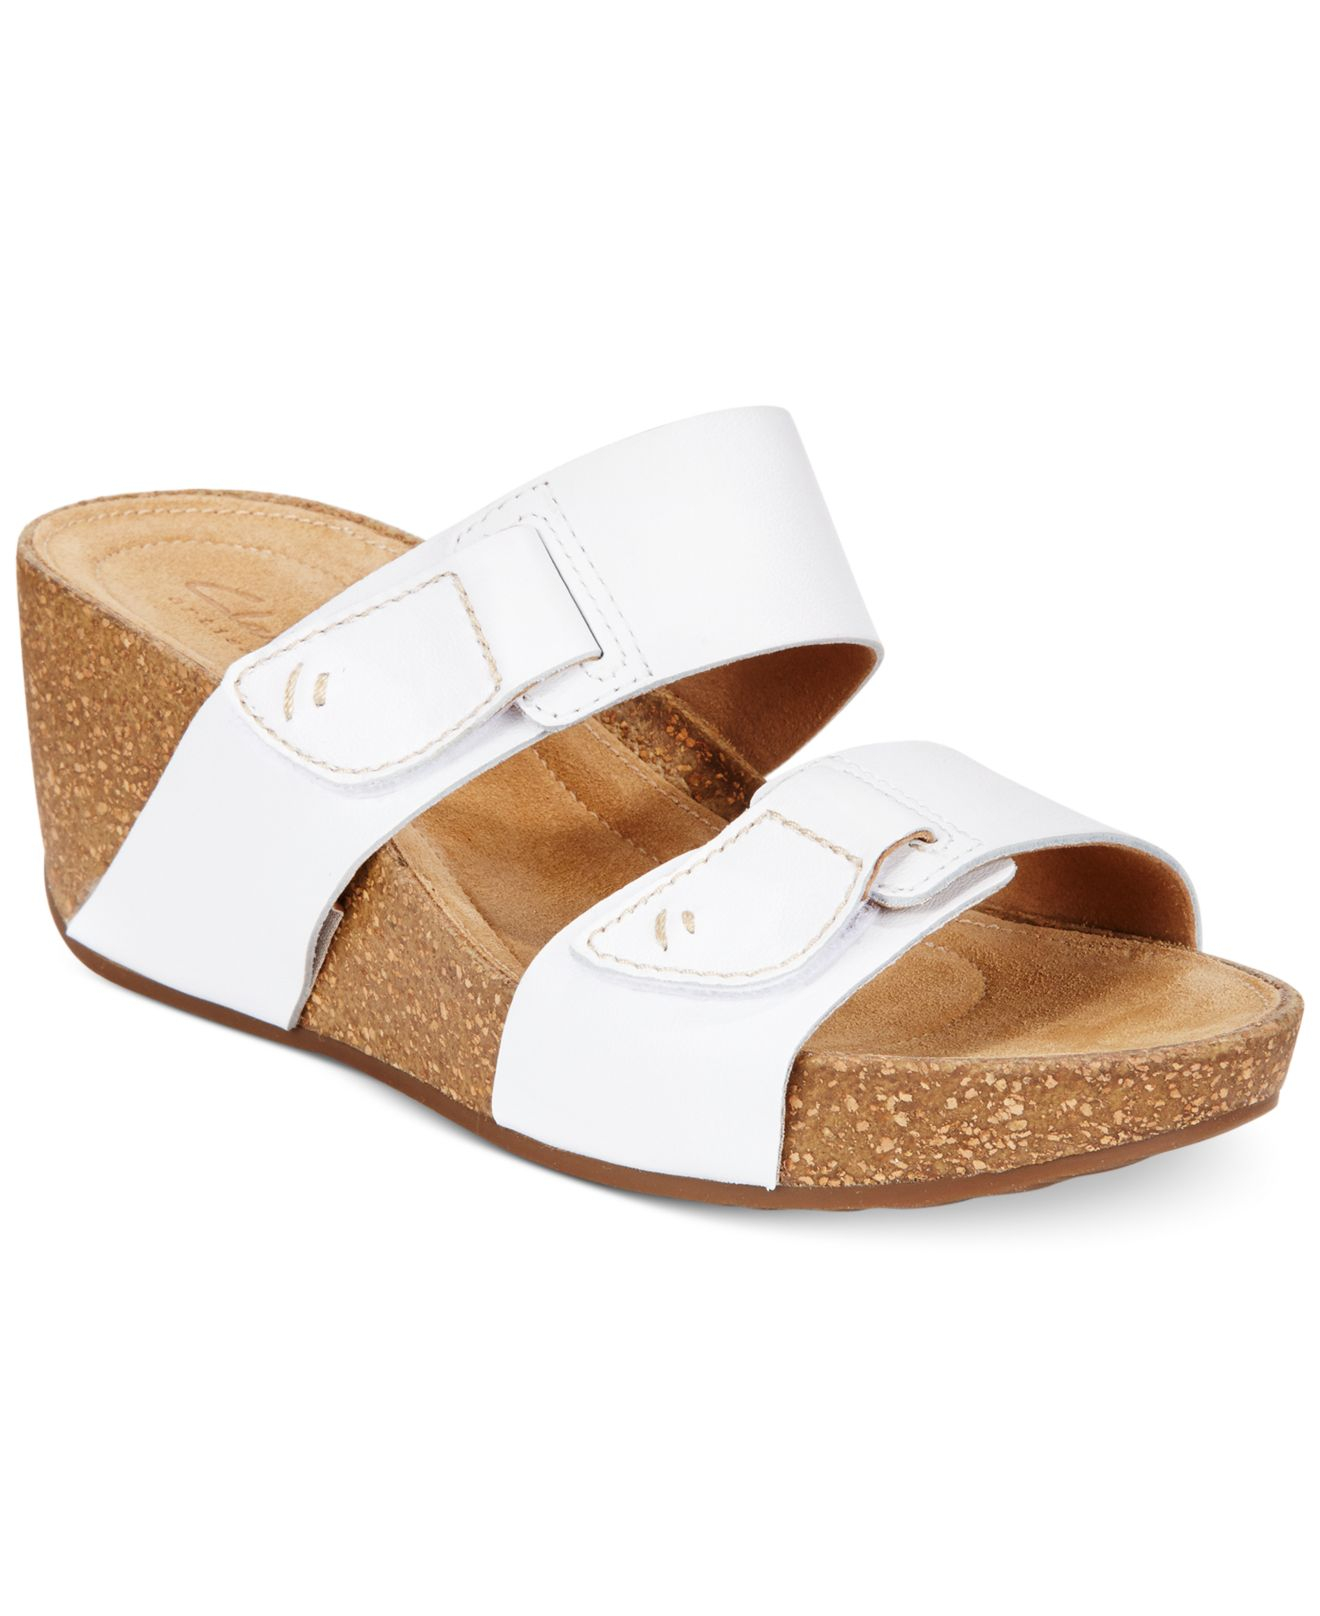 5a04485185f Lyst - Clarks Artisan Women s Temira East Platform Wedge Sandals in ...